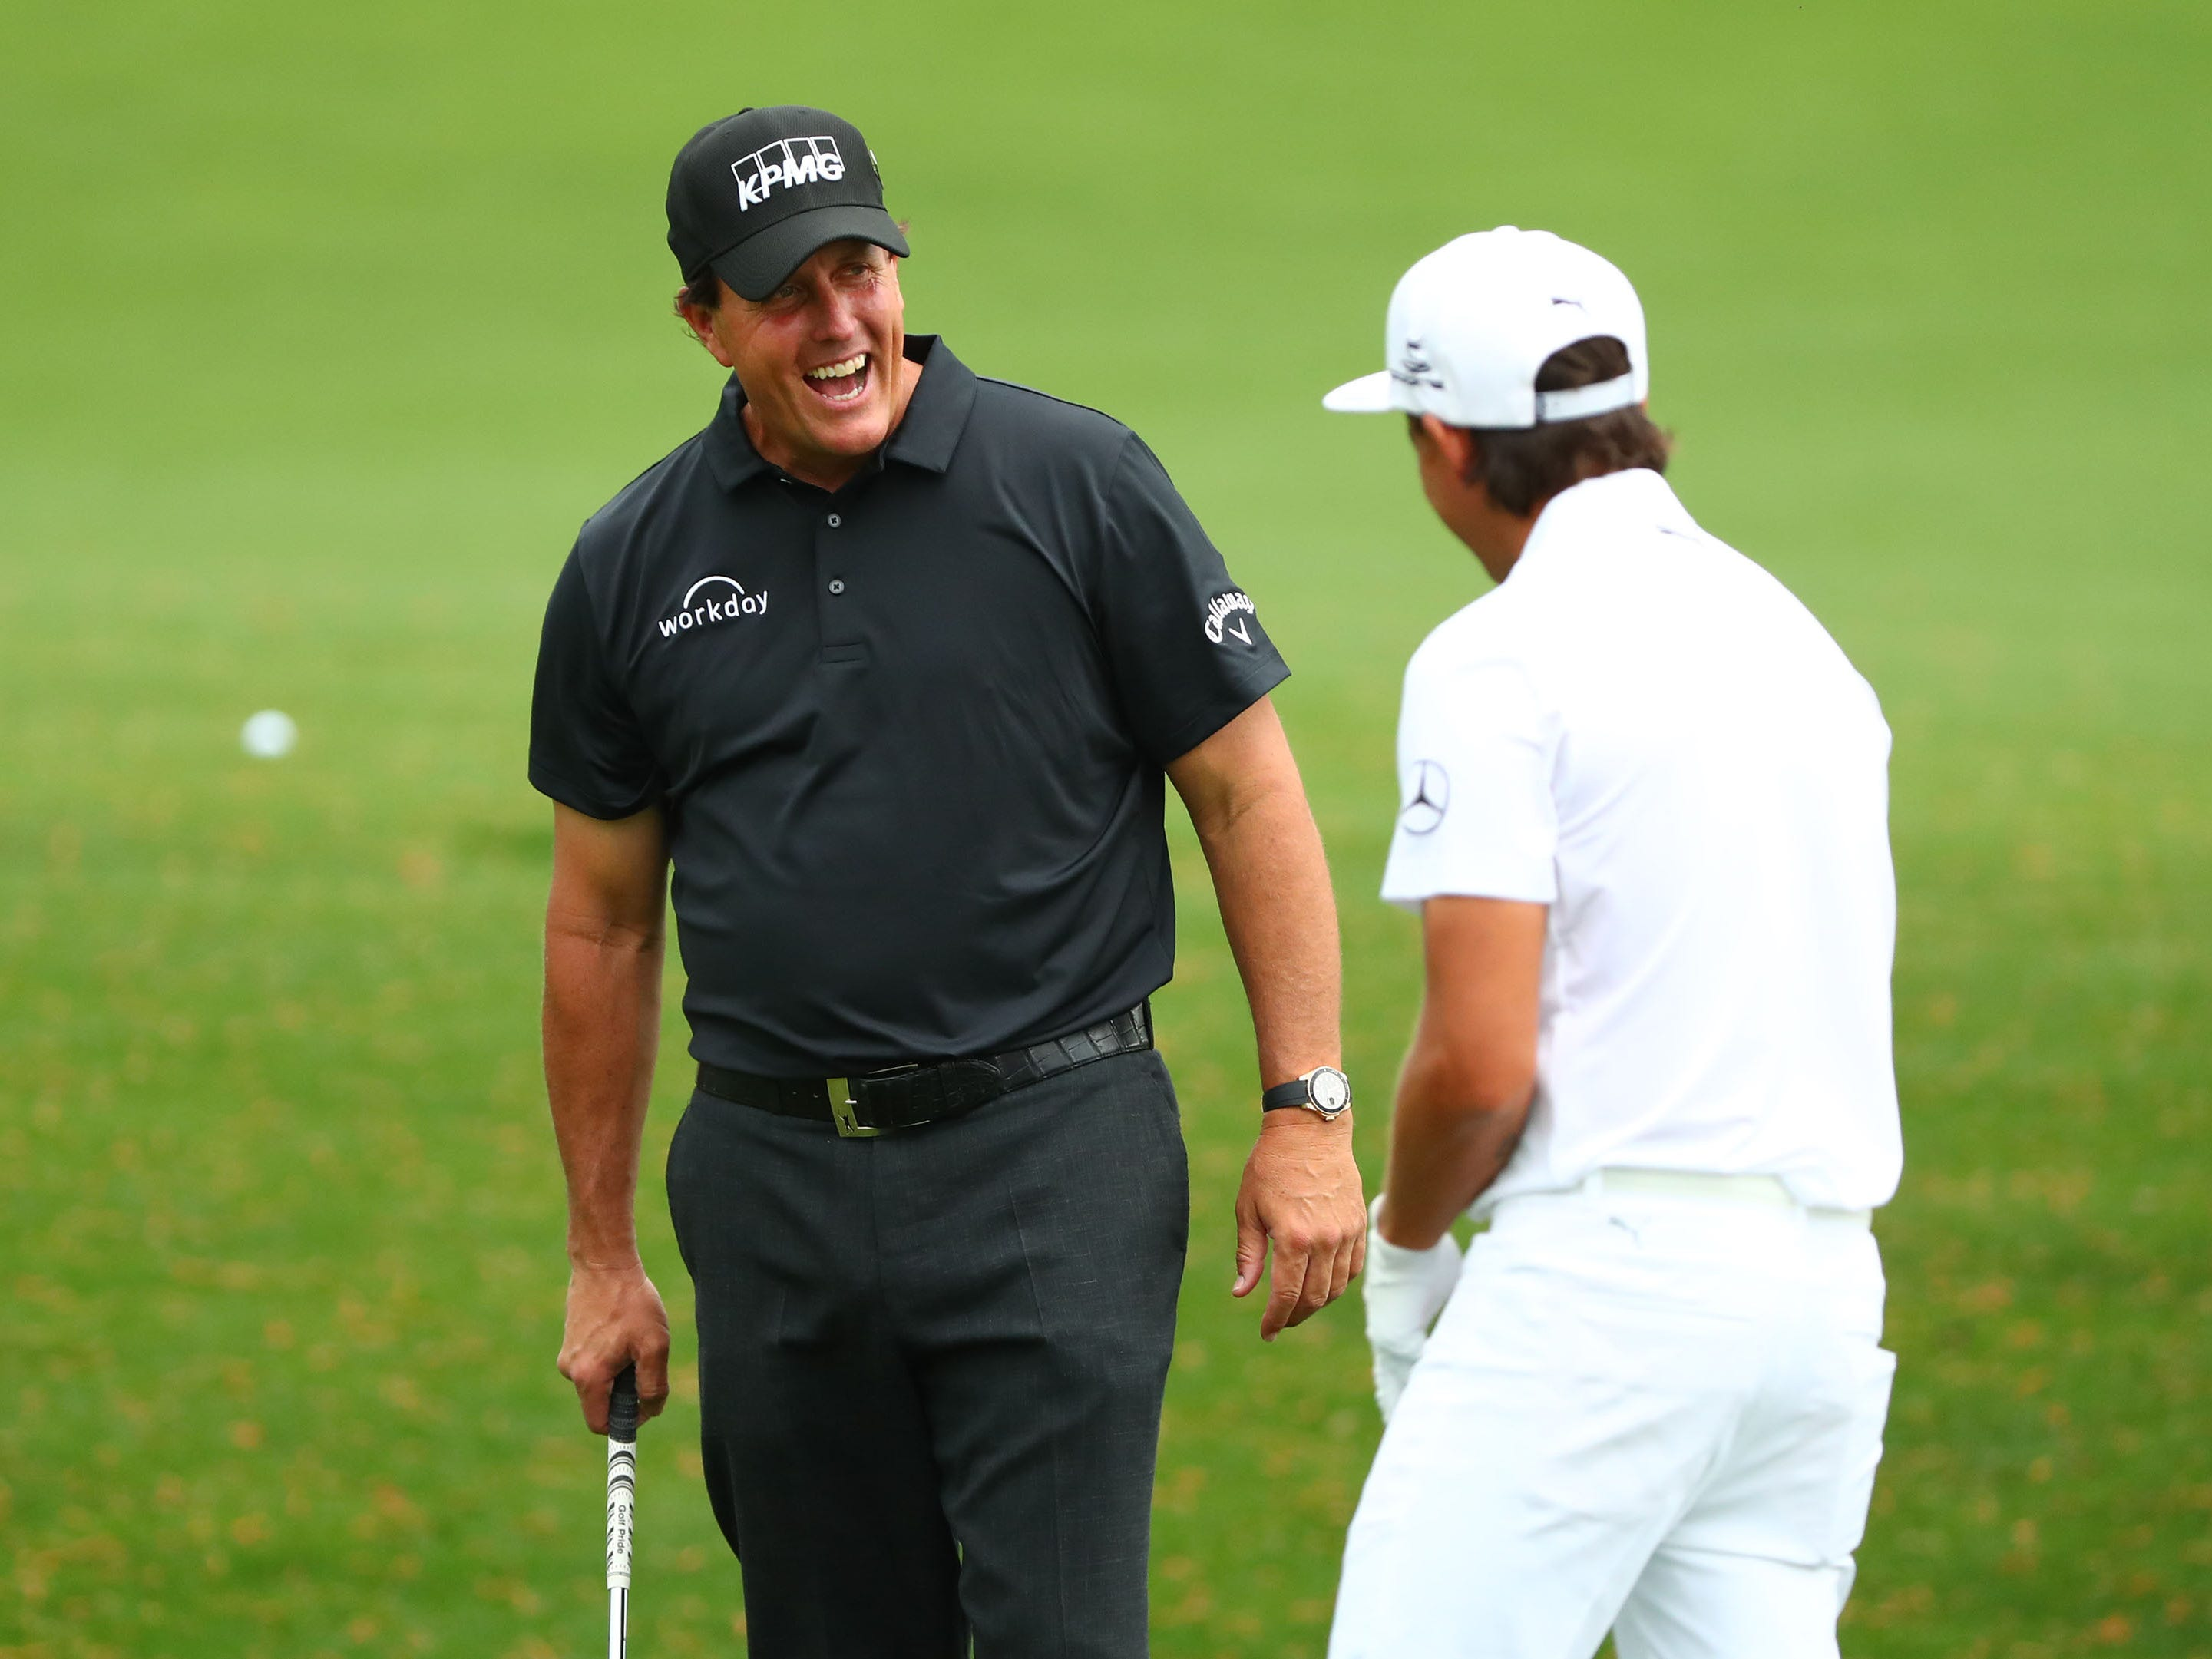 Apr 8, 2019; Augusta, GA, USA; Phil Mickelson (left) and Rickie Fowler talk at the practice facility during a practice round for the Masters golf tournament at Augusta National Golf Club.